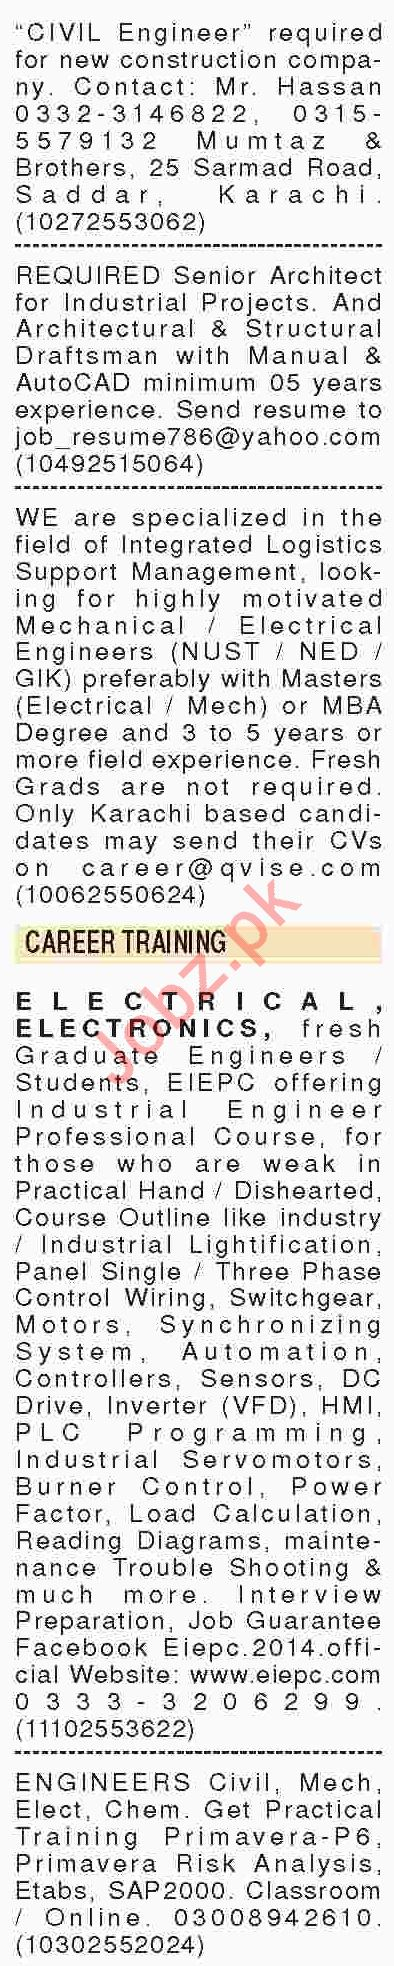 Dawn Sunday Newspaper Engineering Classified Jobs 01/07/2019